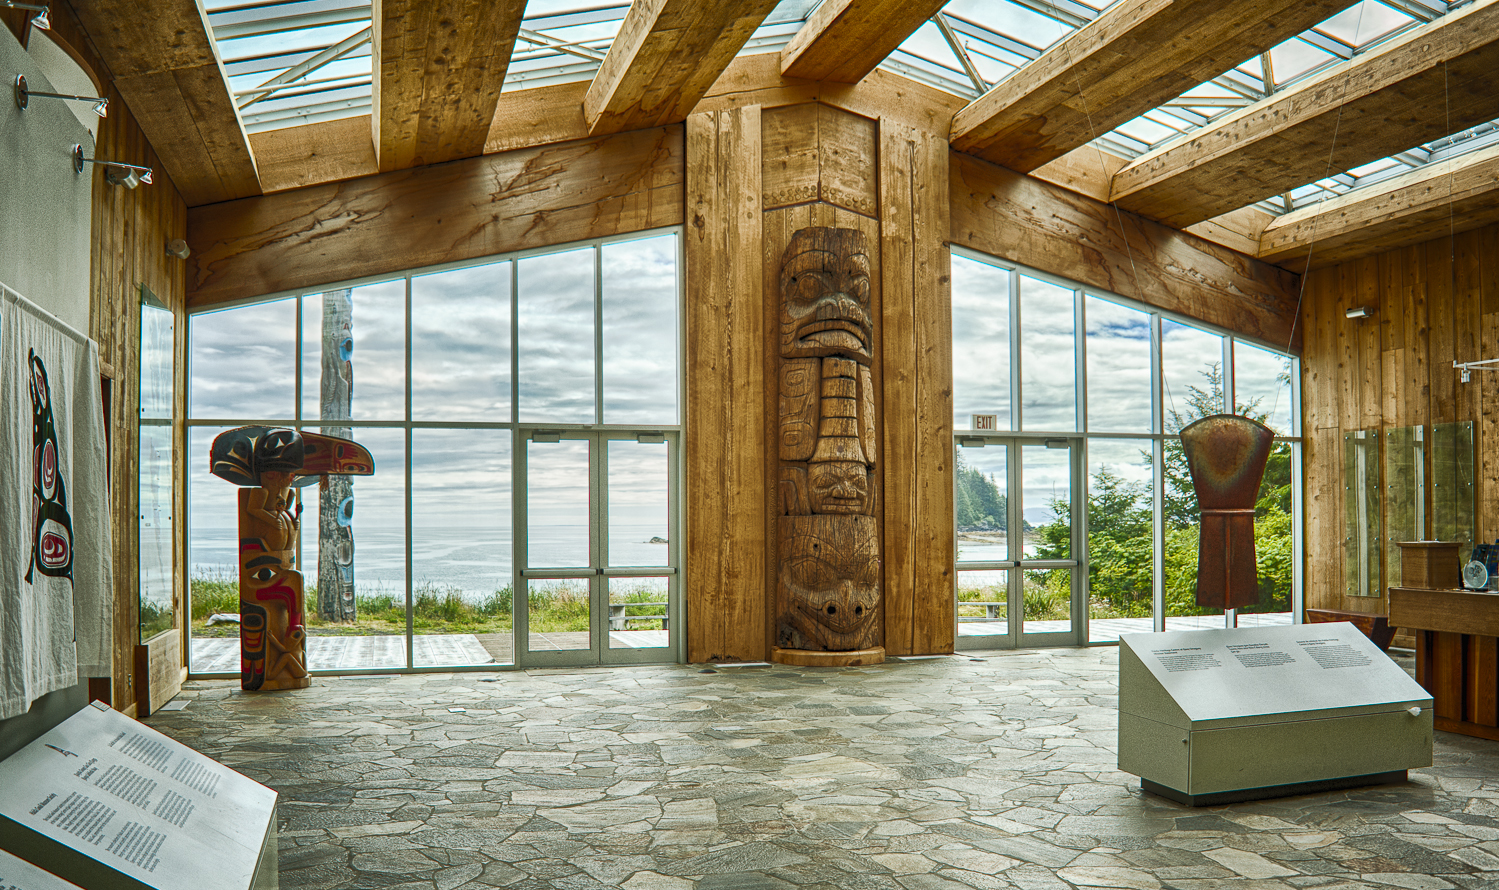 Kaay Centre in Skidegate